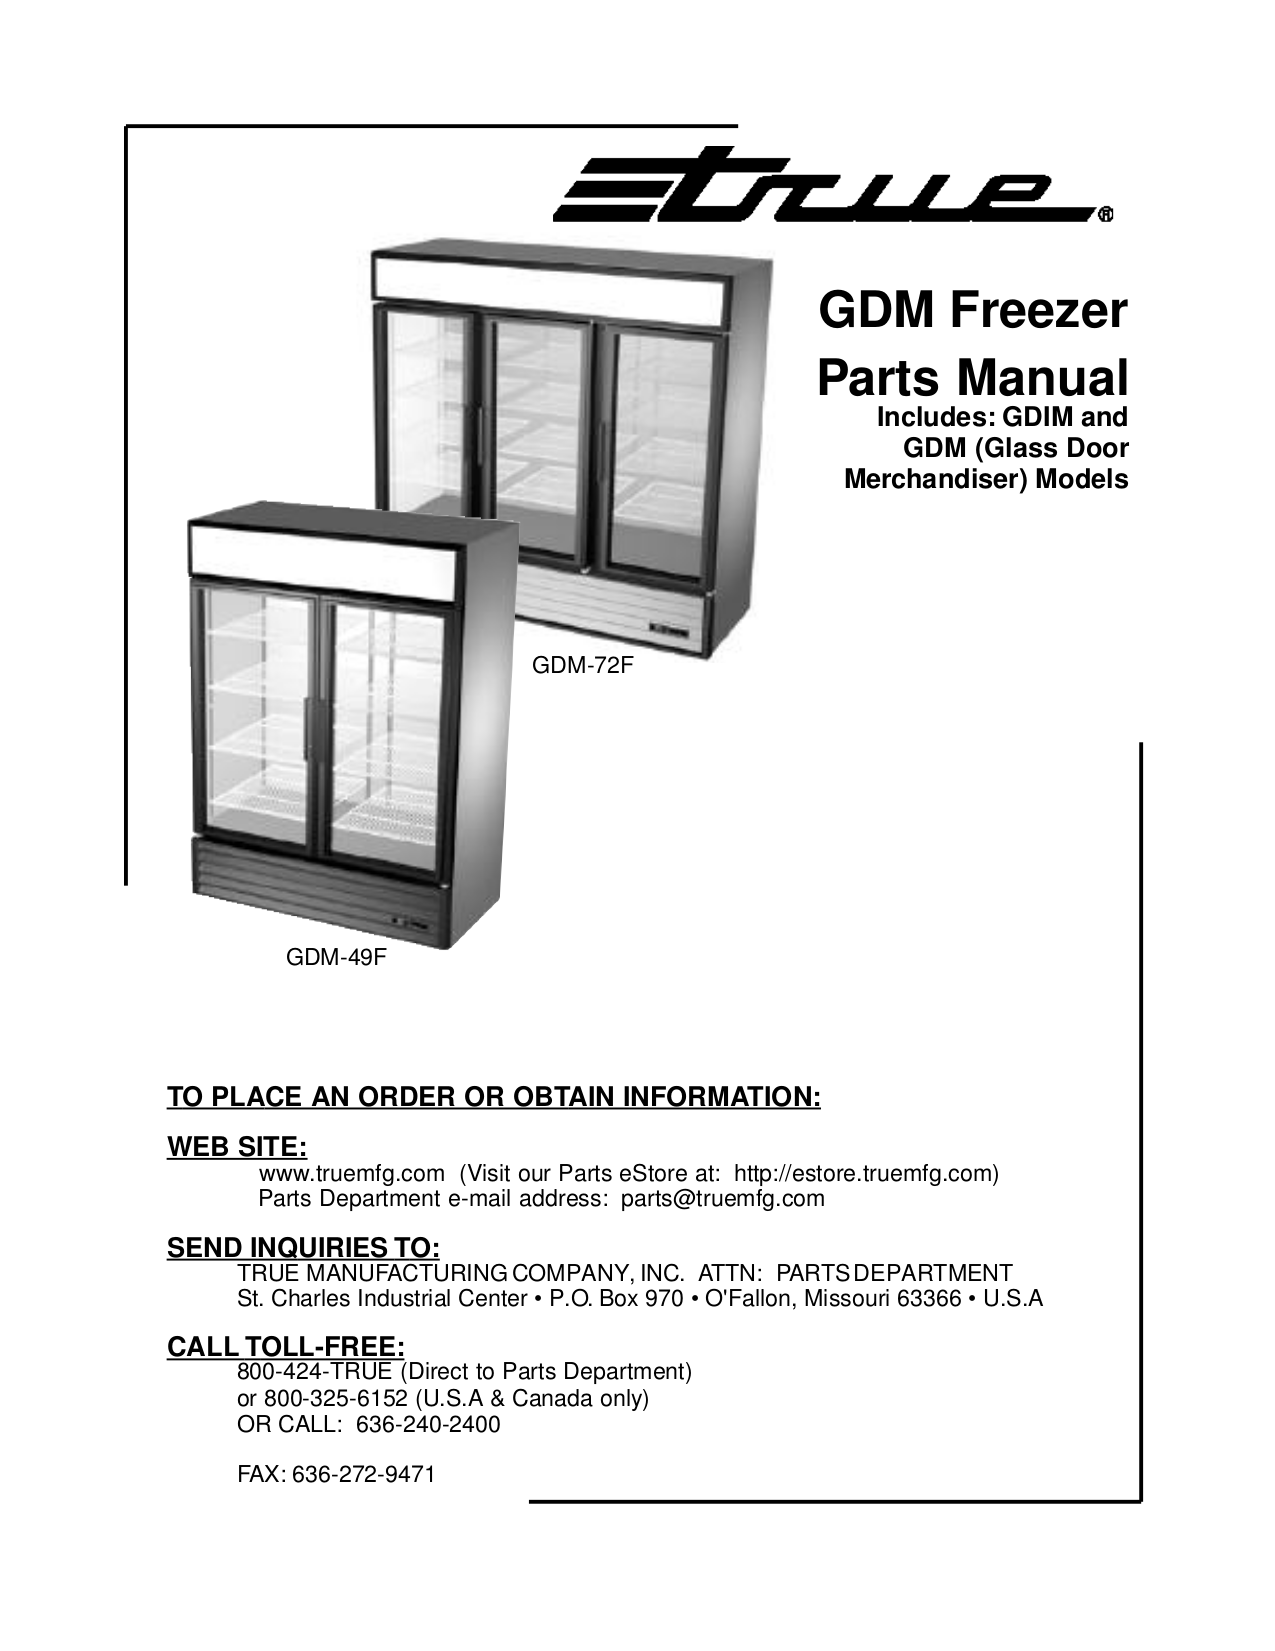 True Gdm 49f Wiring Diagram Download Free Pdf For 72f Freezer Manual